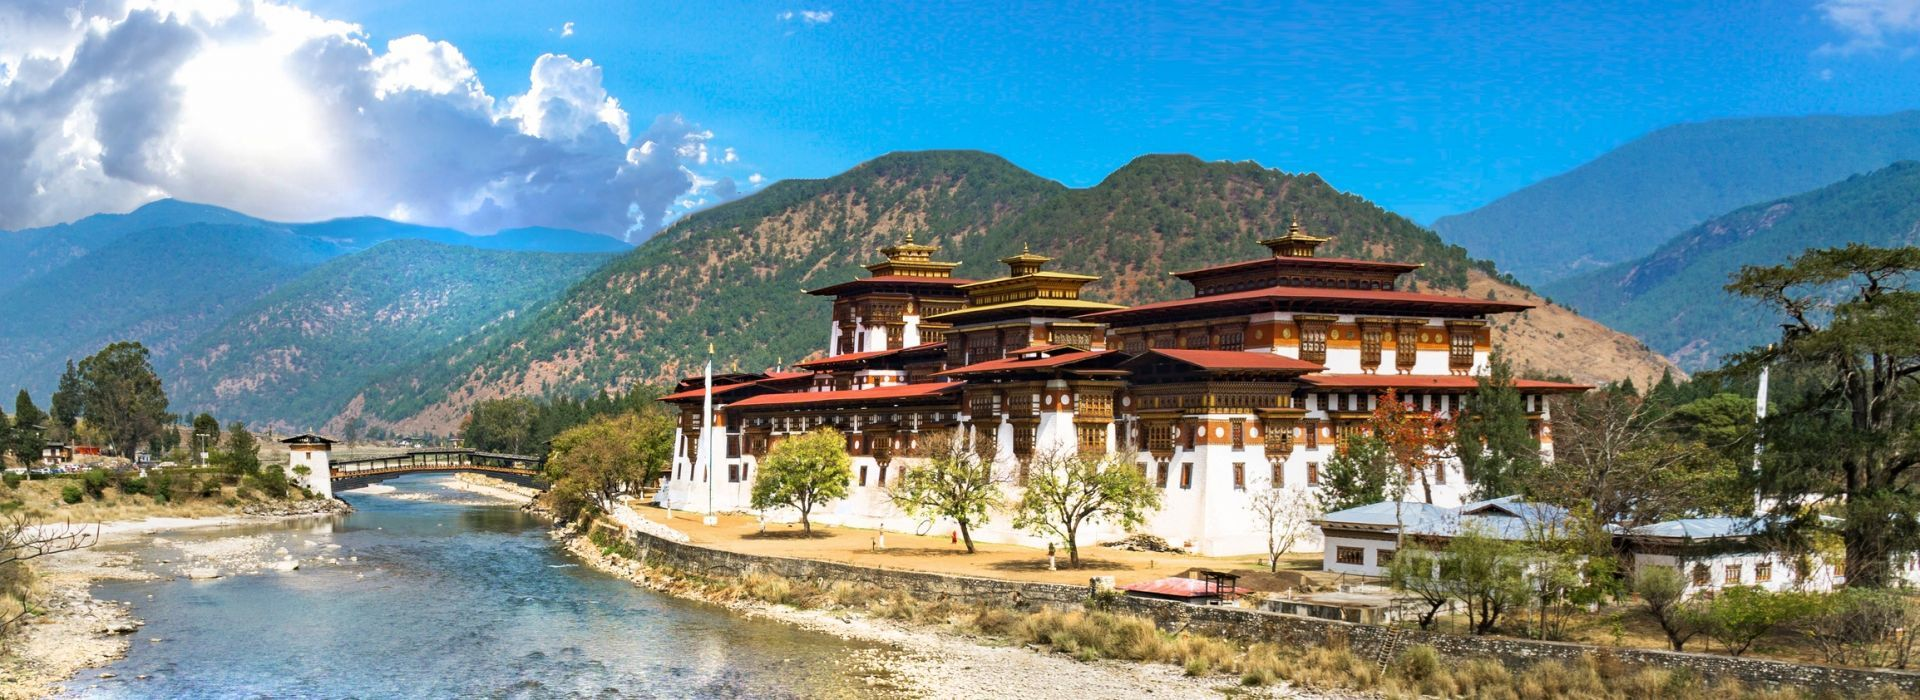 Trekking Tours in Bhutan